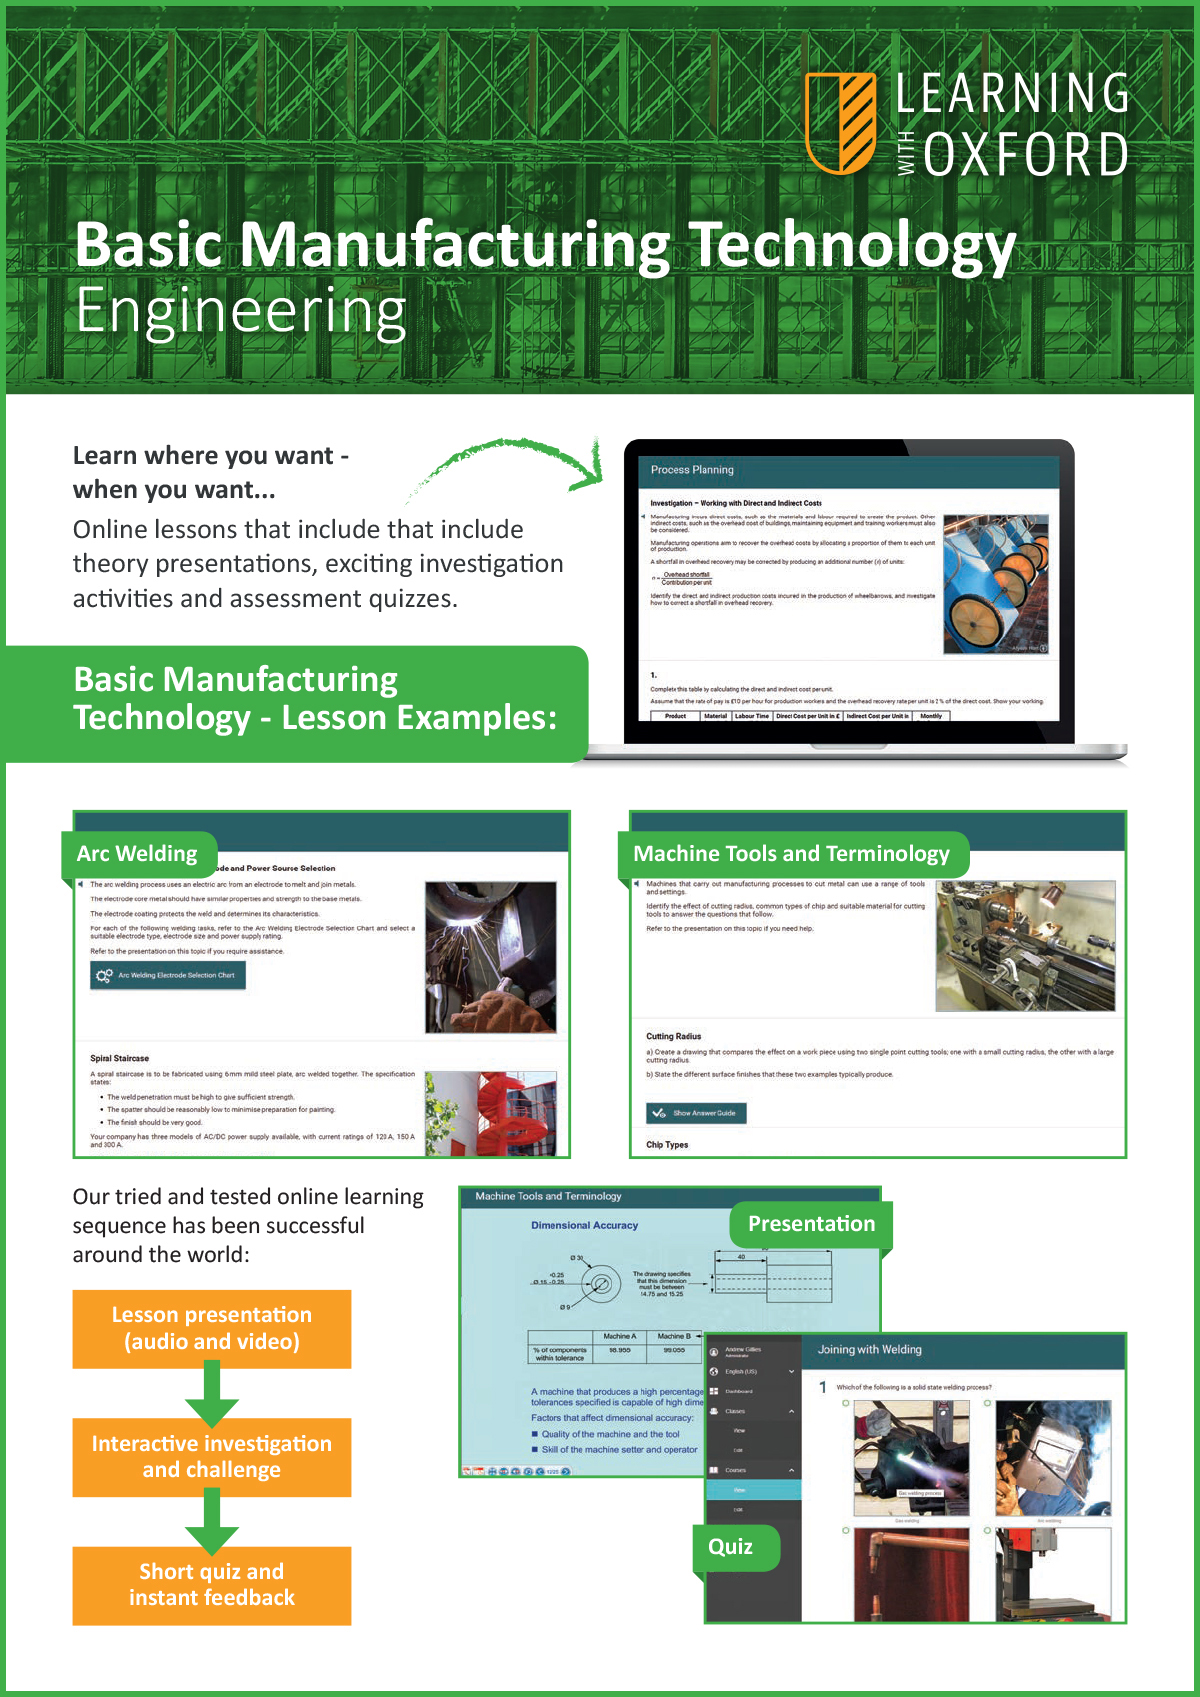 What lesson topics are covered with the licence? - Take a look at our Basic Manufacturing Technology InfoSheet to see a full topic listing.